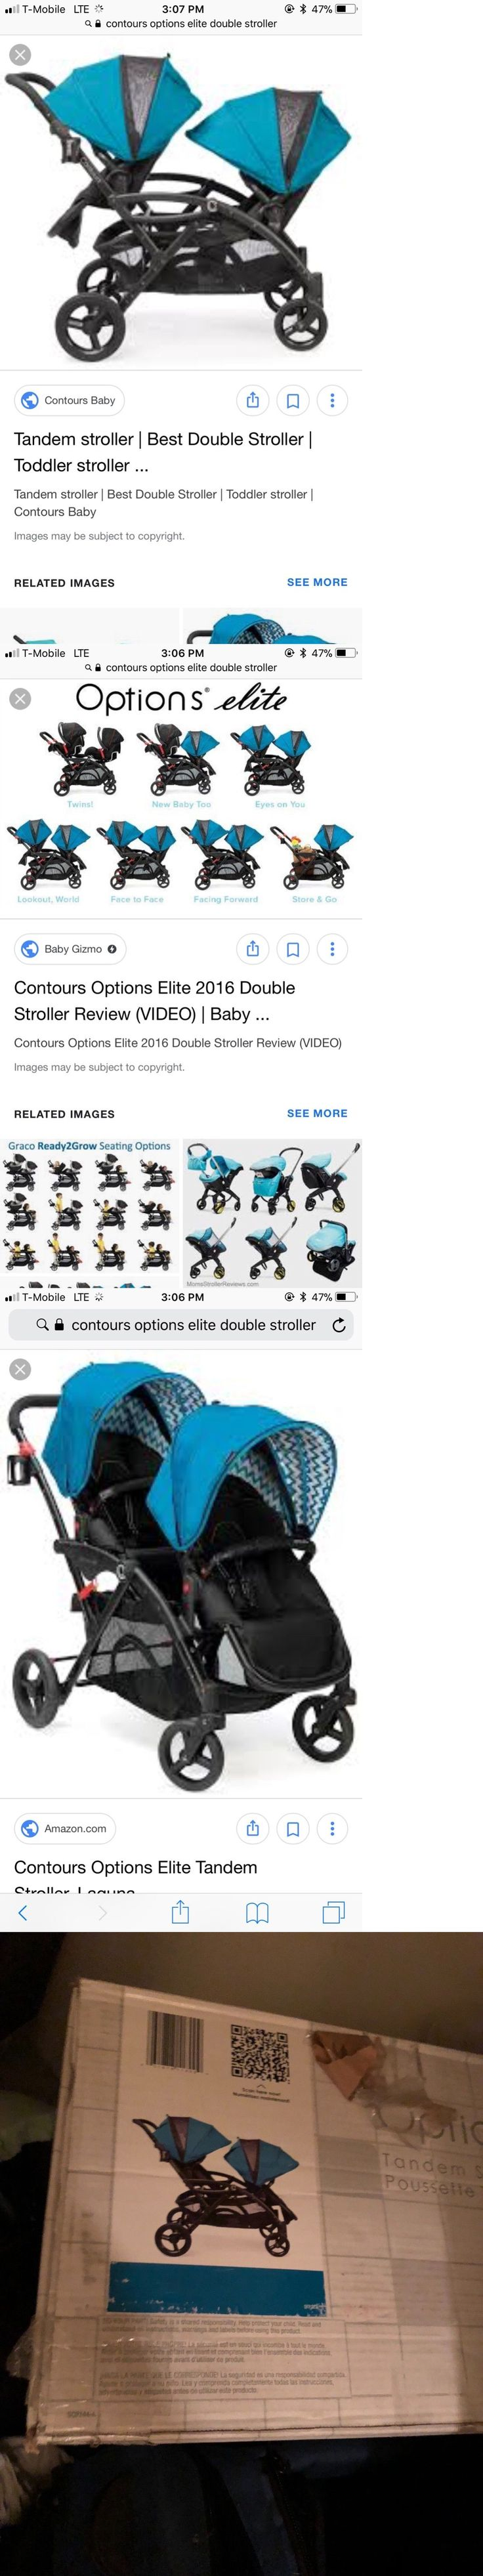 Other Baby Safety and Health 20436: Contours Options Elite Twin Tandem Double Baby Stroller Laguna Brand New -> BUY IT NOW ONLY: $319.99 on eBay!